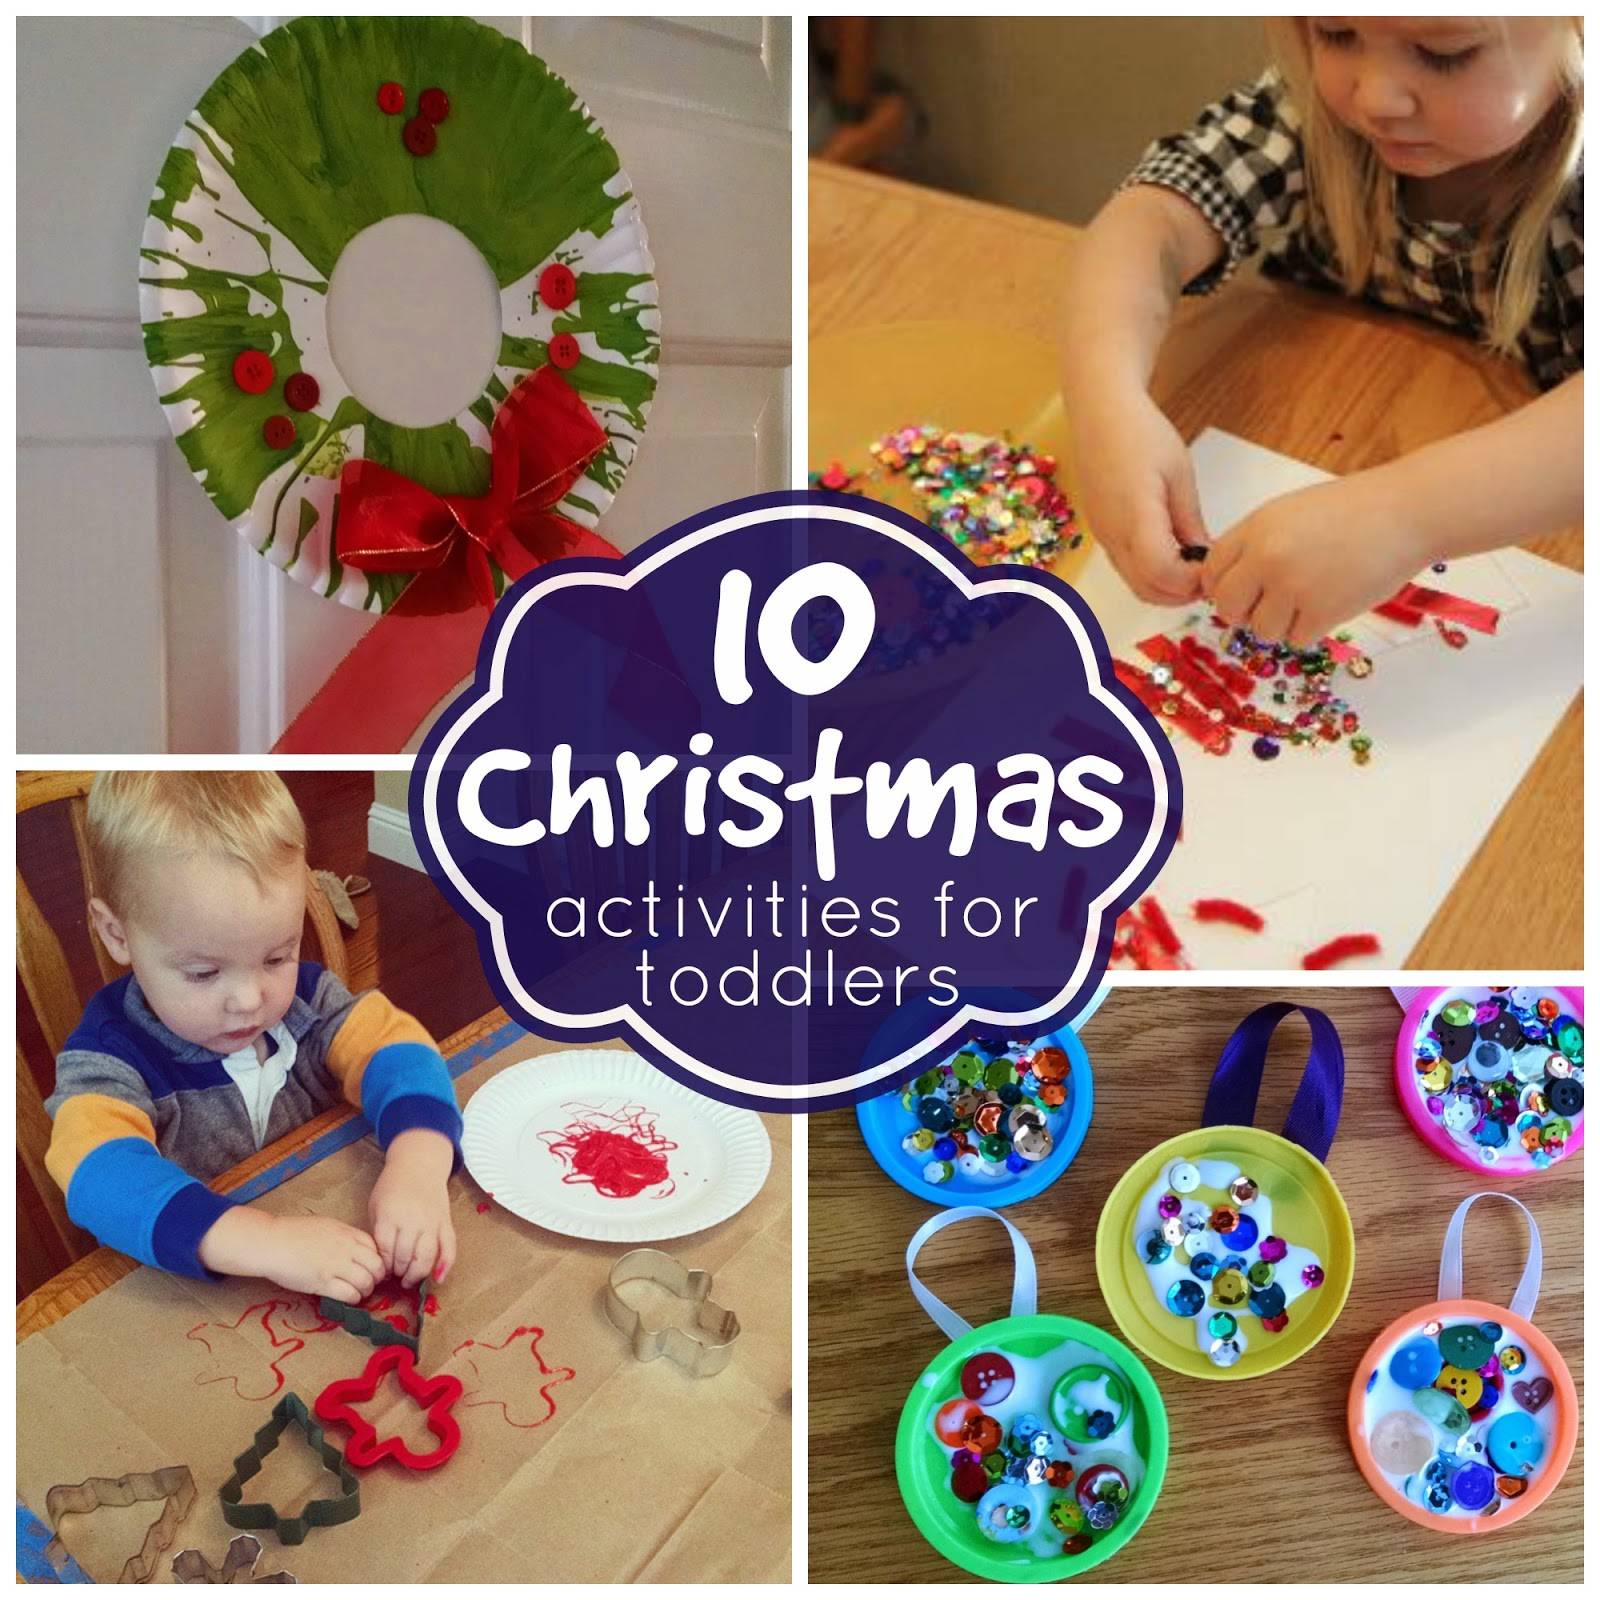 Christmas+activities+for+toddlers